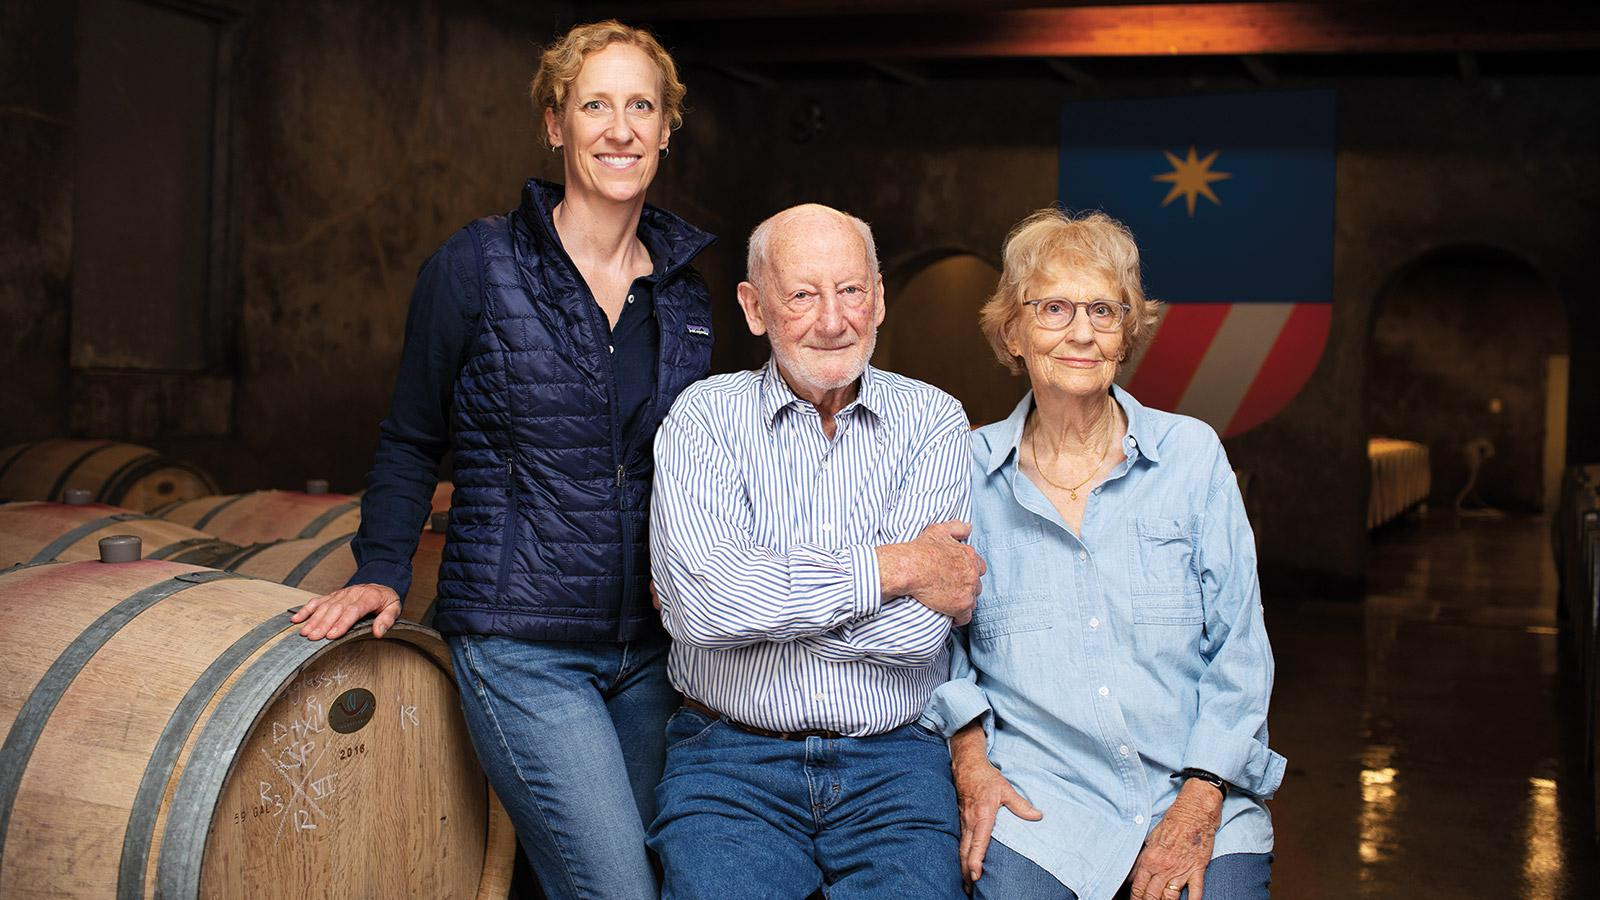 Napa Valley Master Class: Aging Gracefully